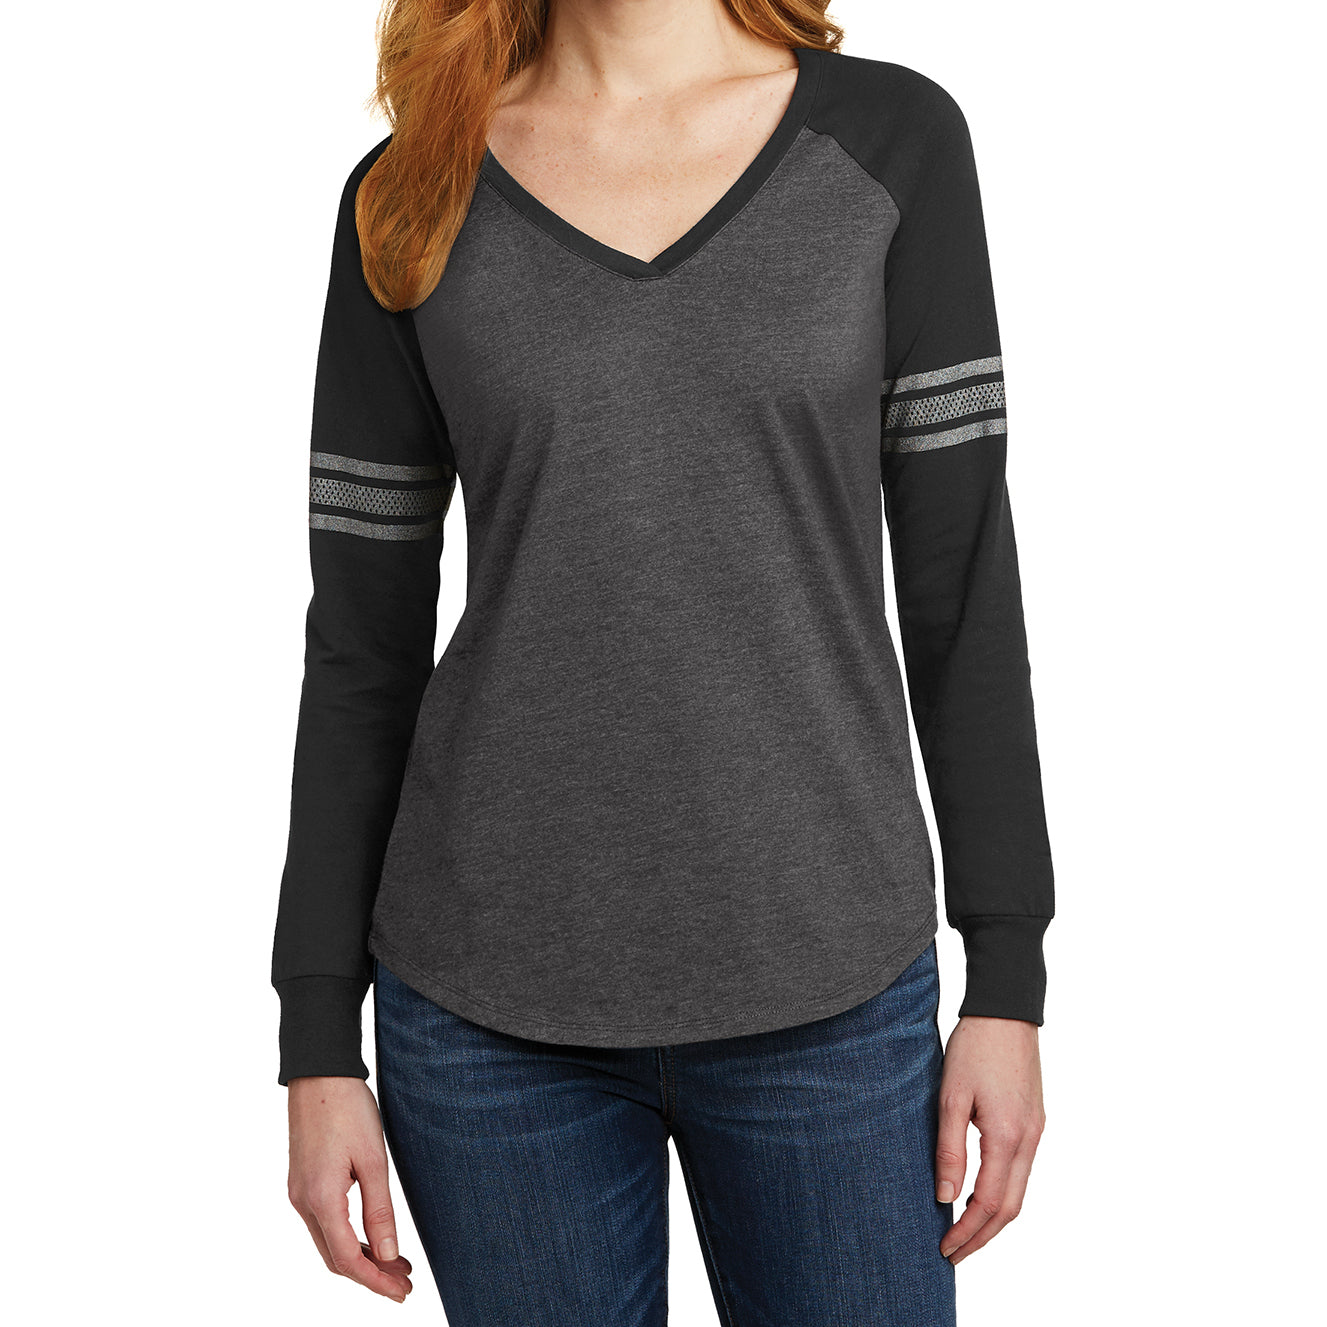 Women's Game Long Sleeve V-Neck Tee - Heathered Charcoal/ Black/ Silver - Front